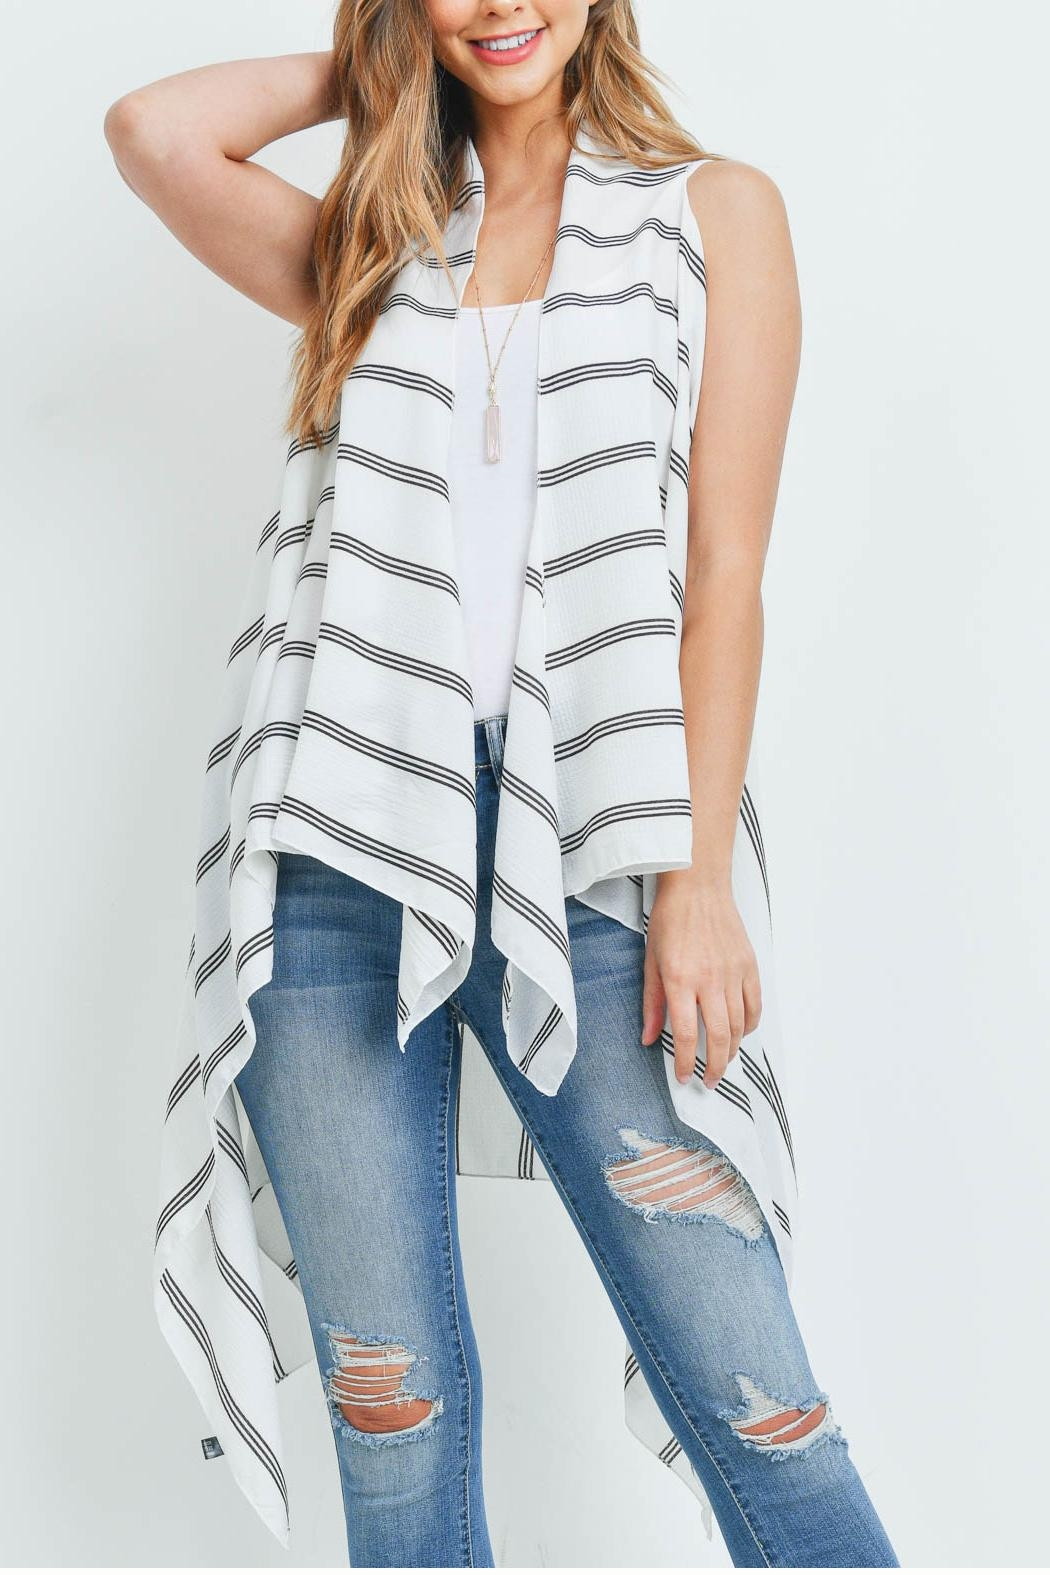 Riah Fashion Striped-Print-Kimono-Vest - Front Cropped Image